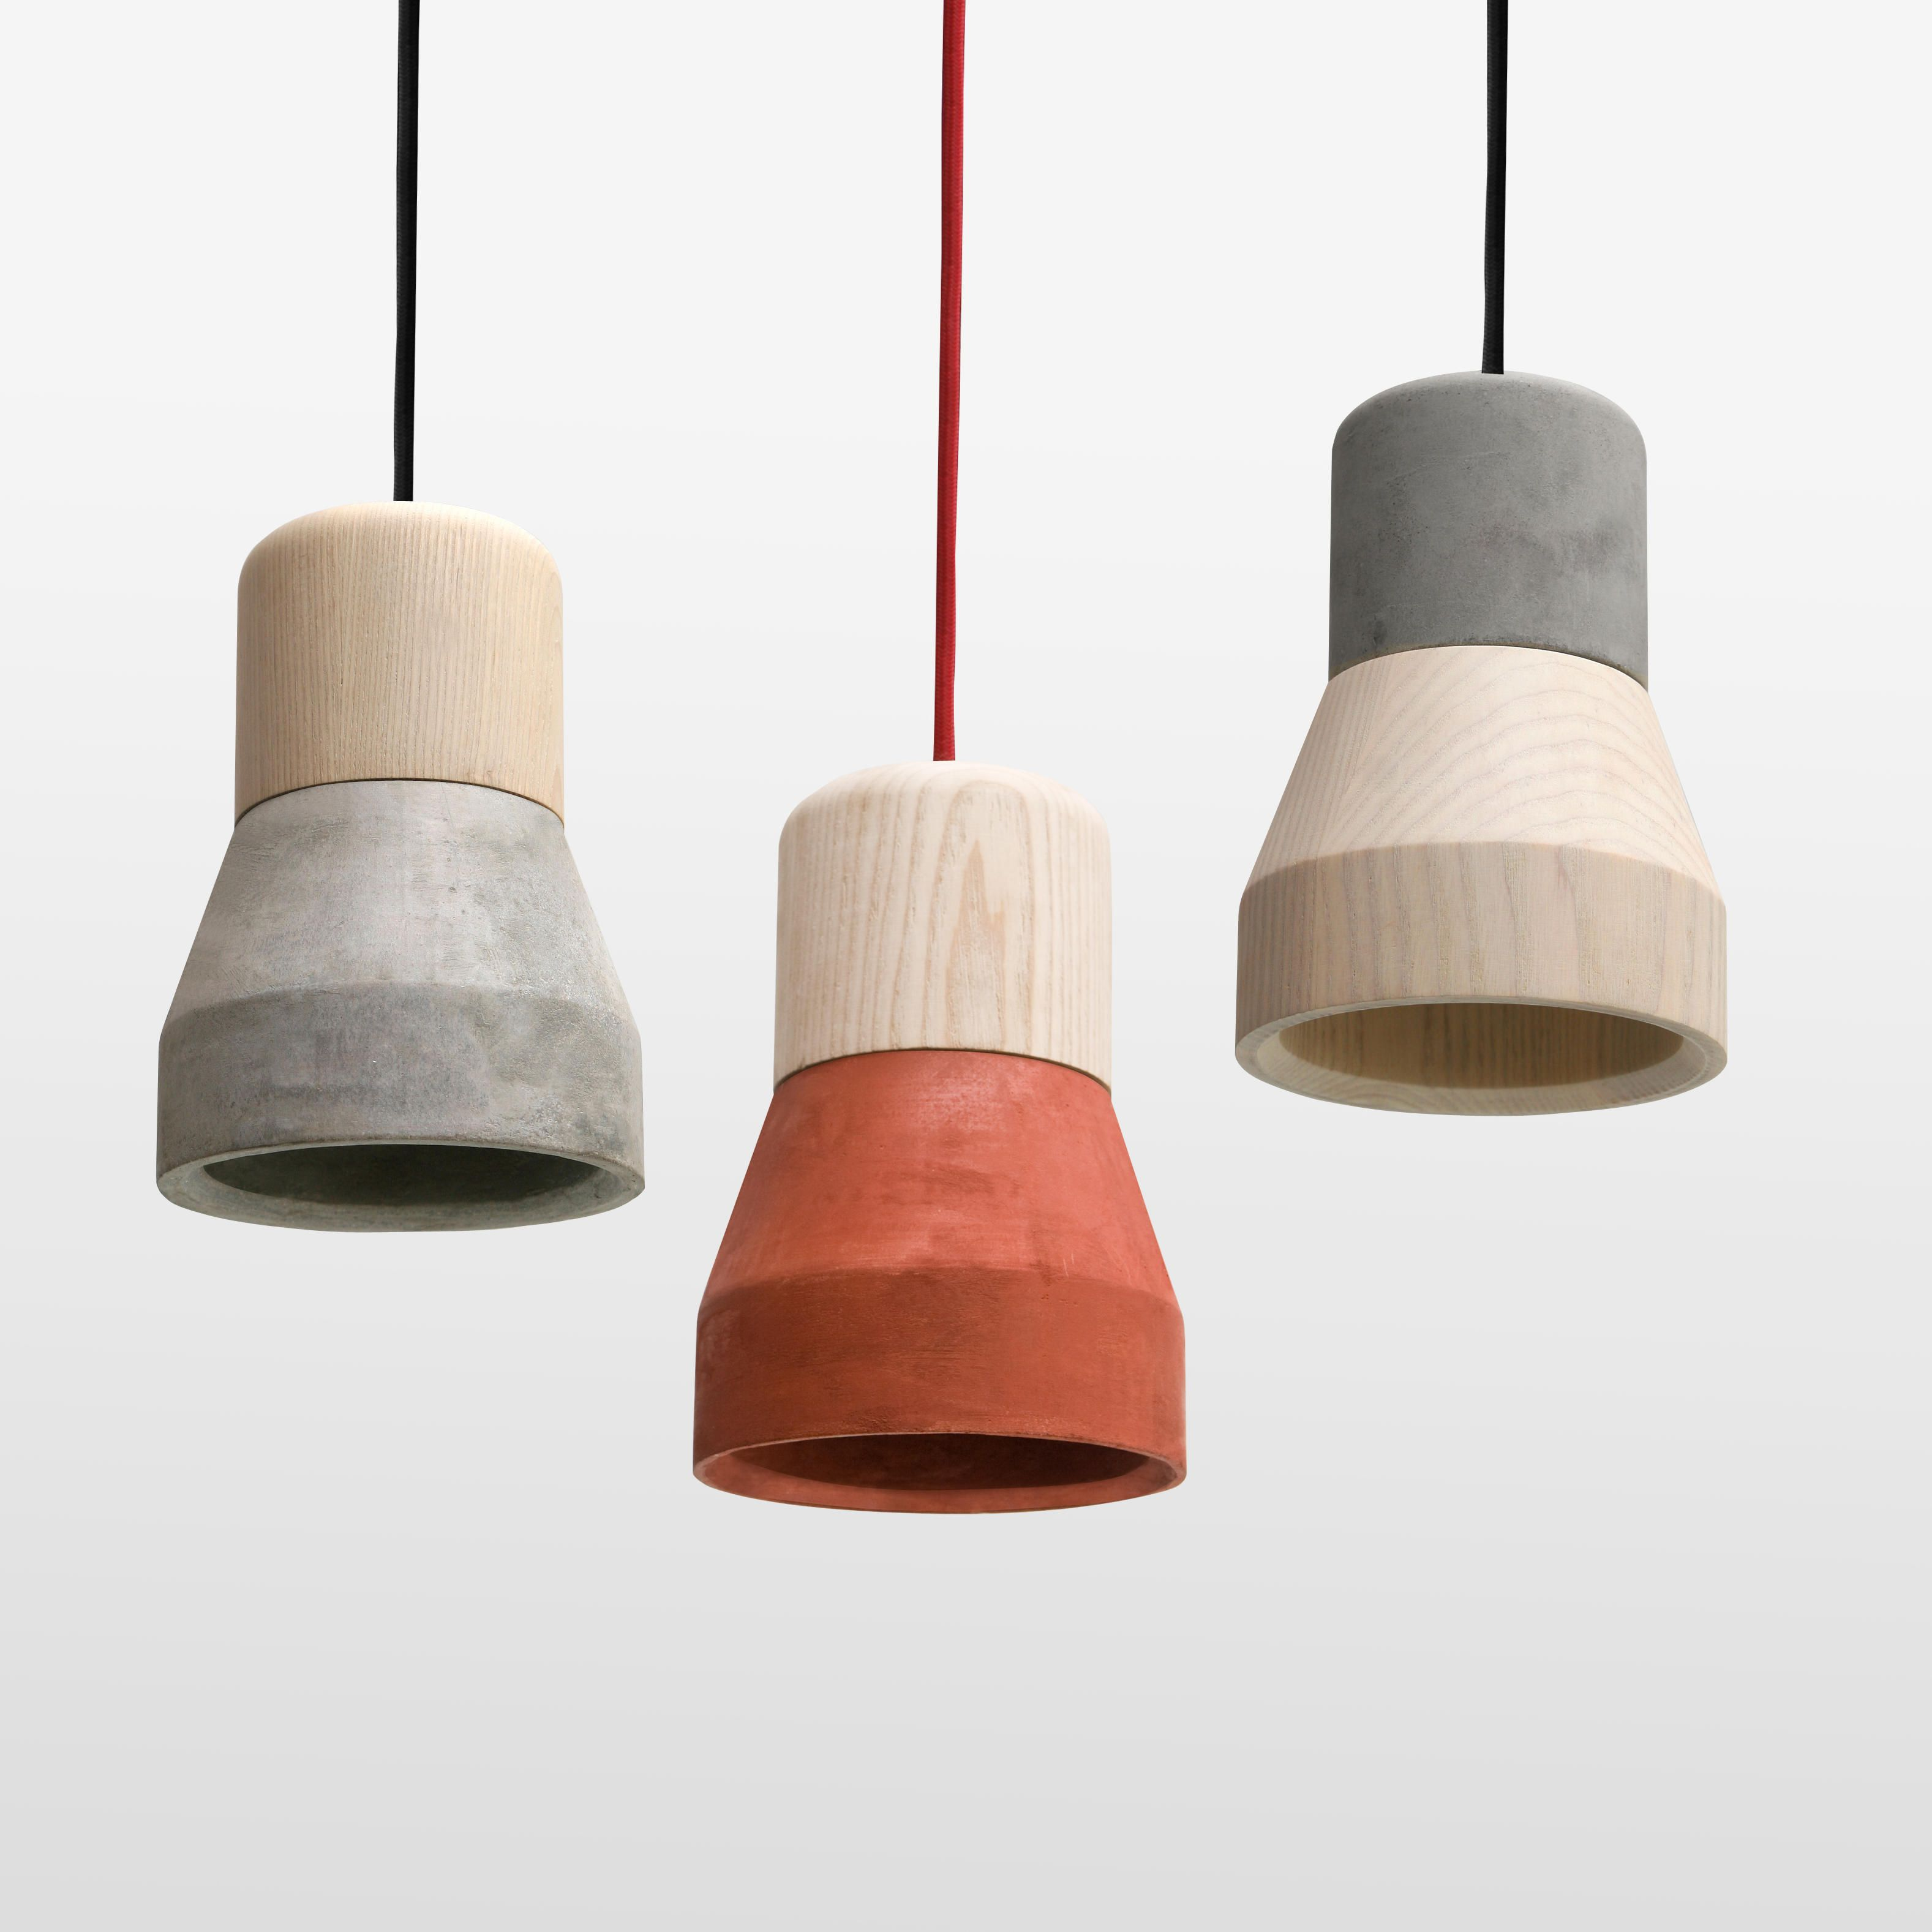 pendant under listed also concrete following is ccr innova manufacturer shade webster the temple australia sometimes numbers sku lamp